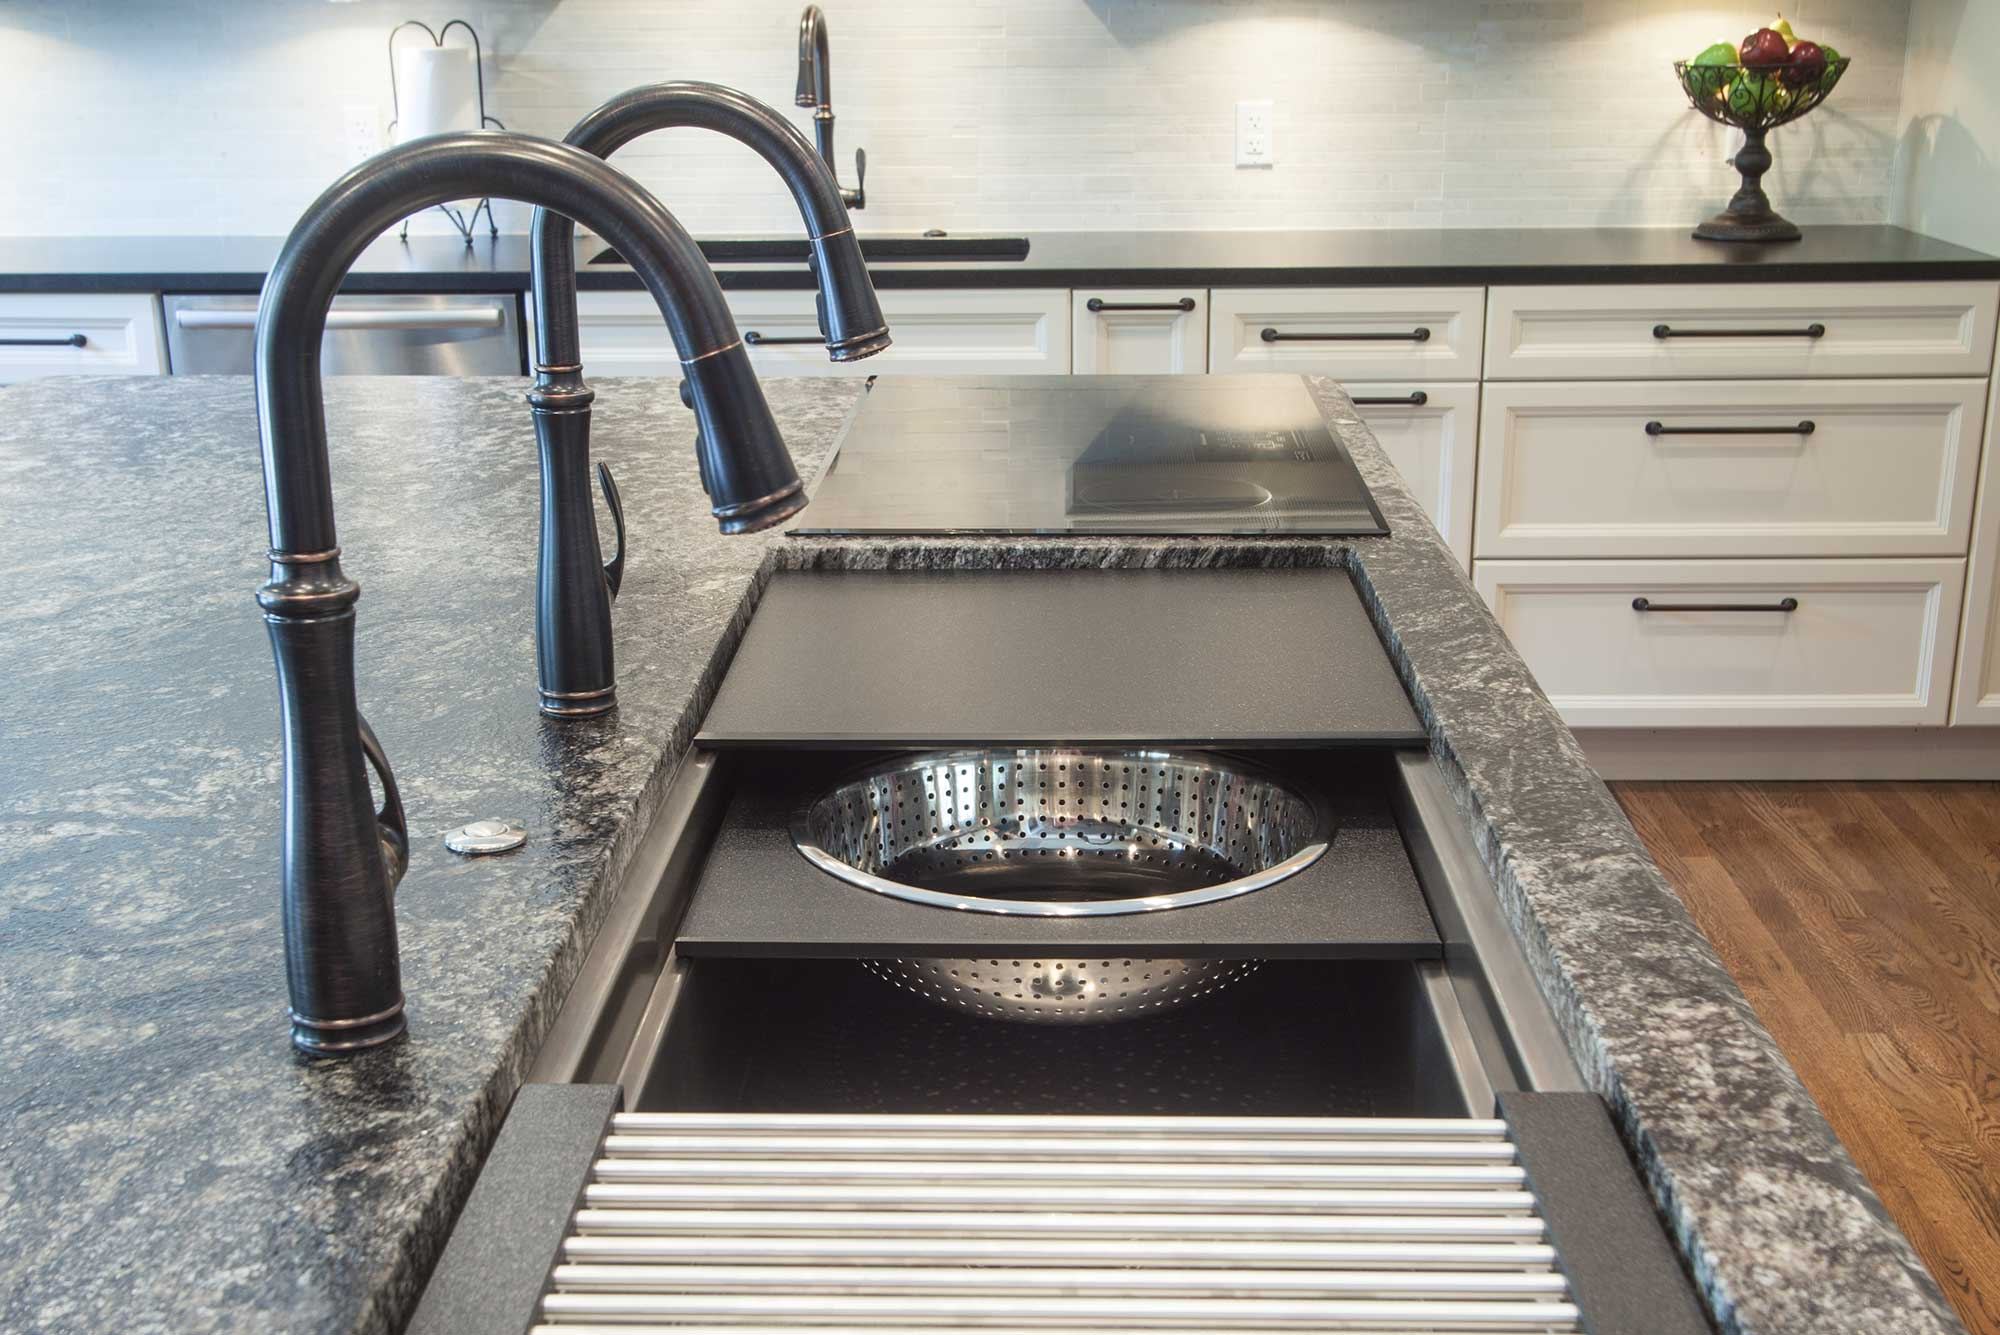 Seamless Fusion Tulsa Kitchen island with Galley Workstation kitchen sink